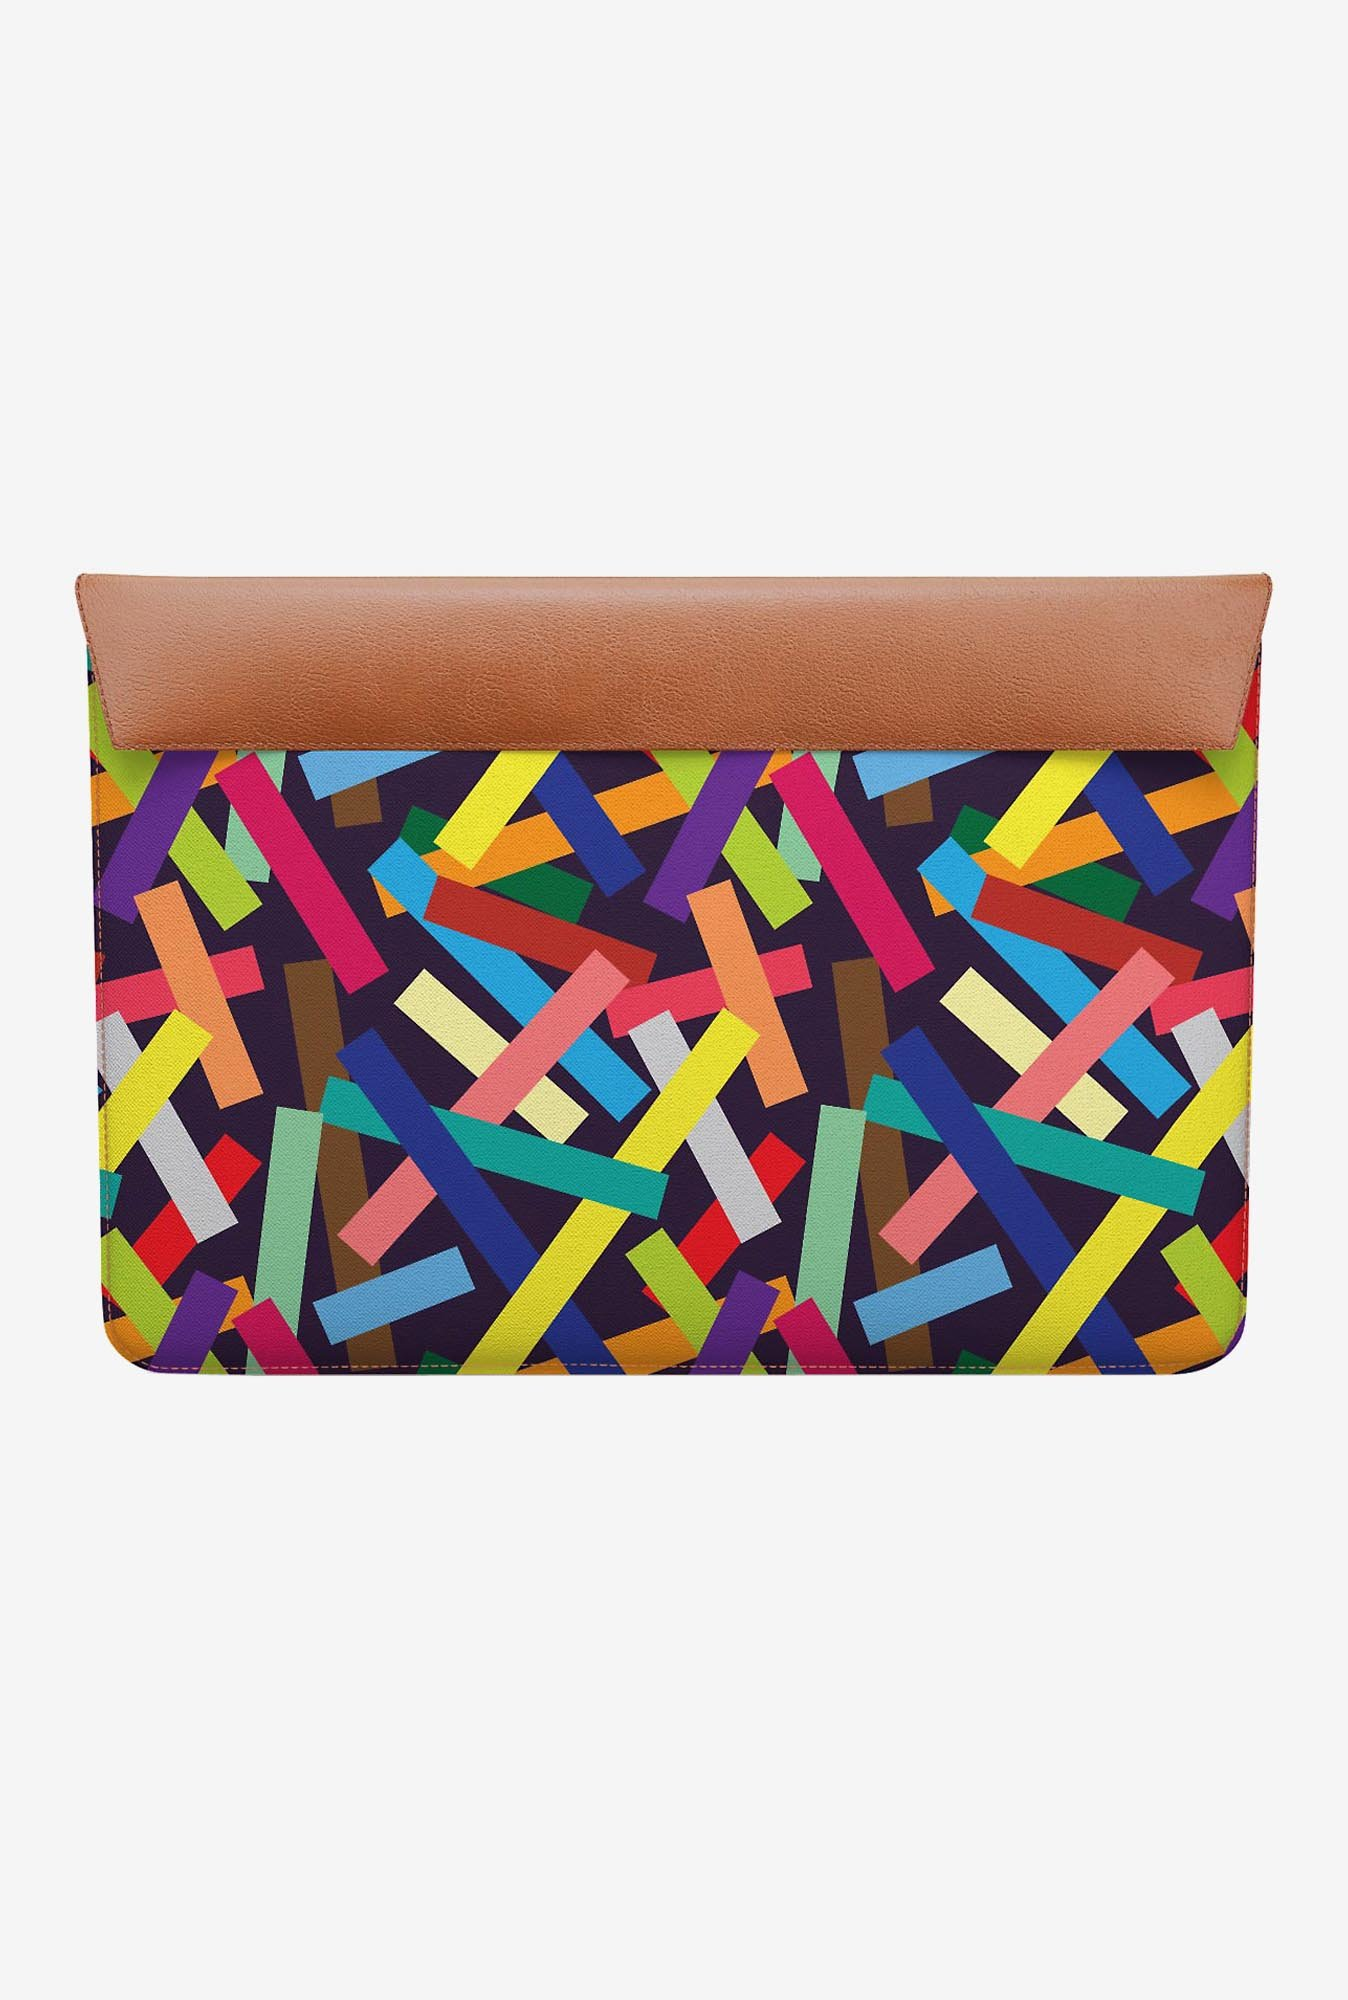 DailyObjects Square Confetti MacBook 12 Envelope Sleeve